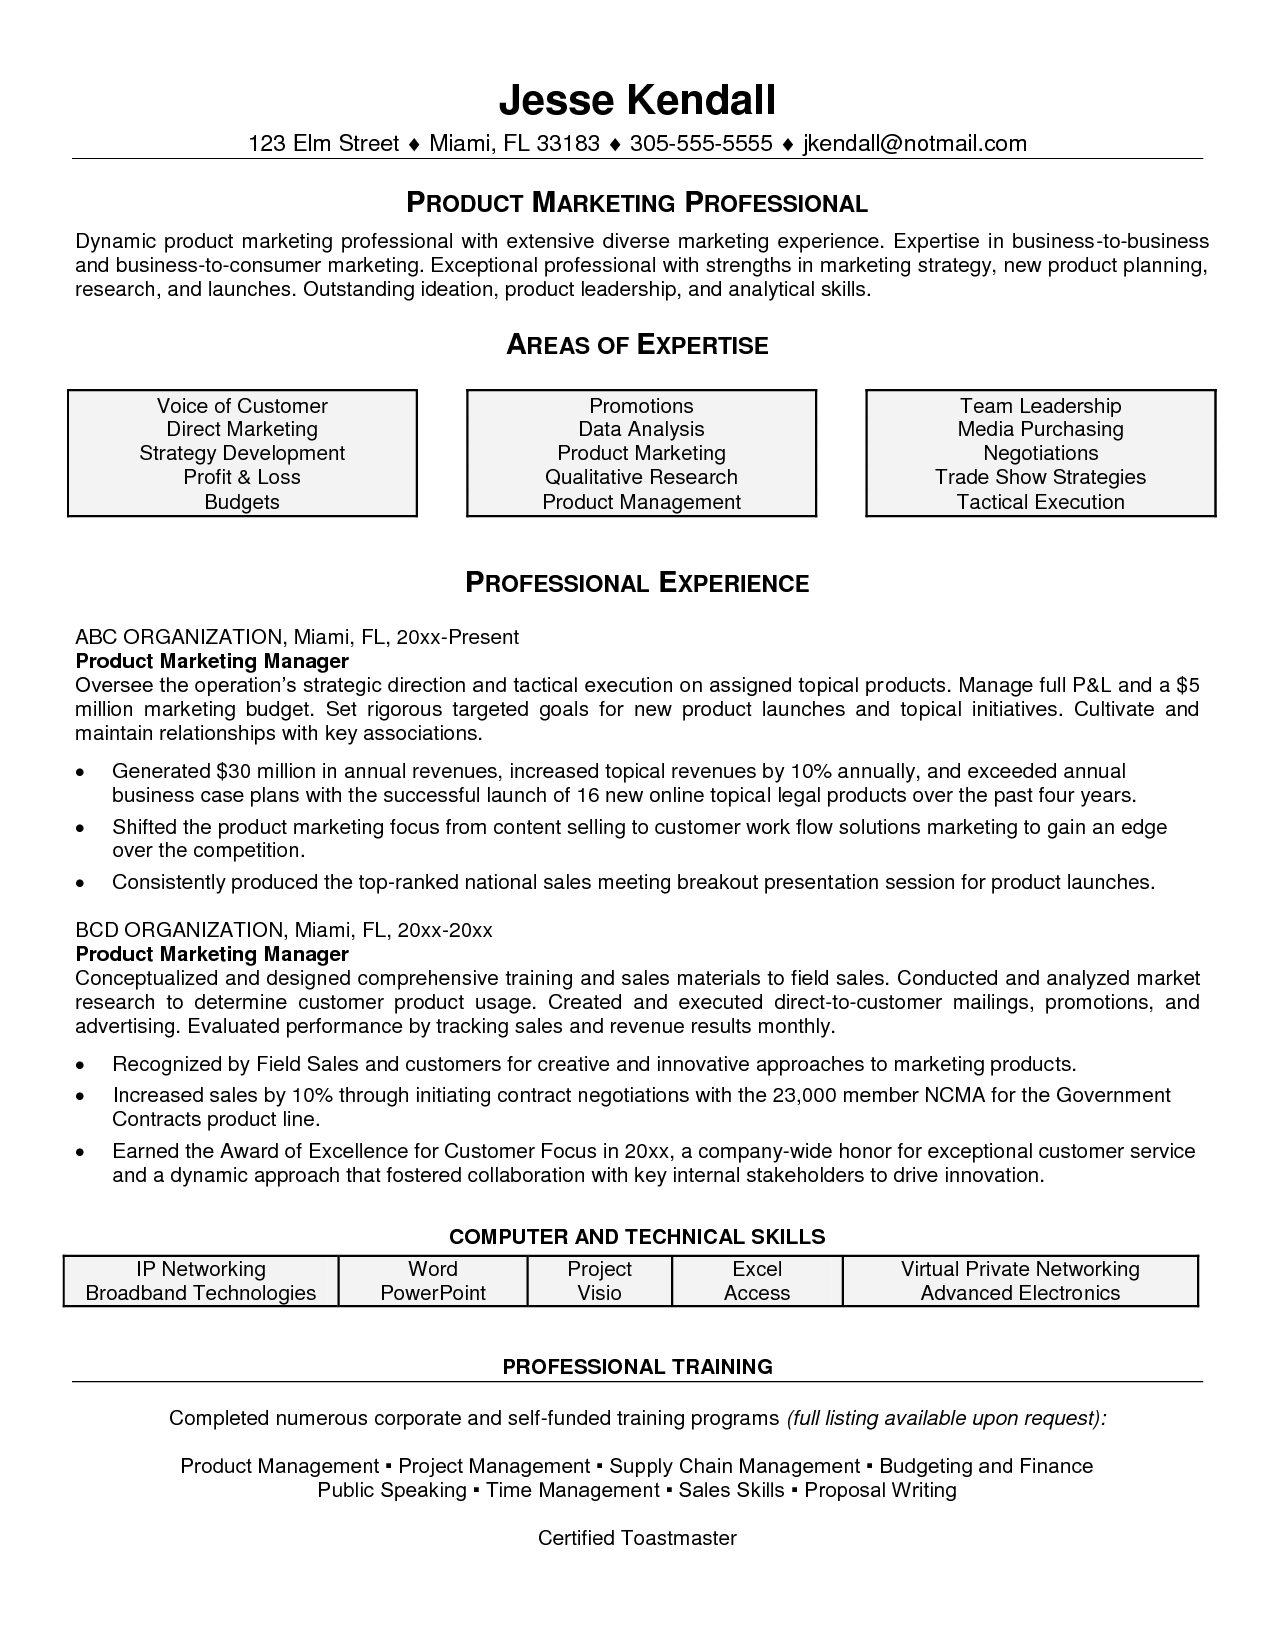 This Resume Example For A Marketing Project Manager Is Used To